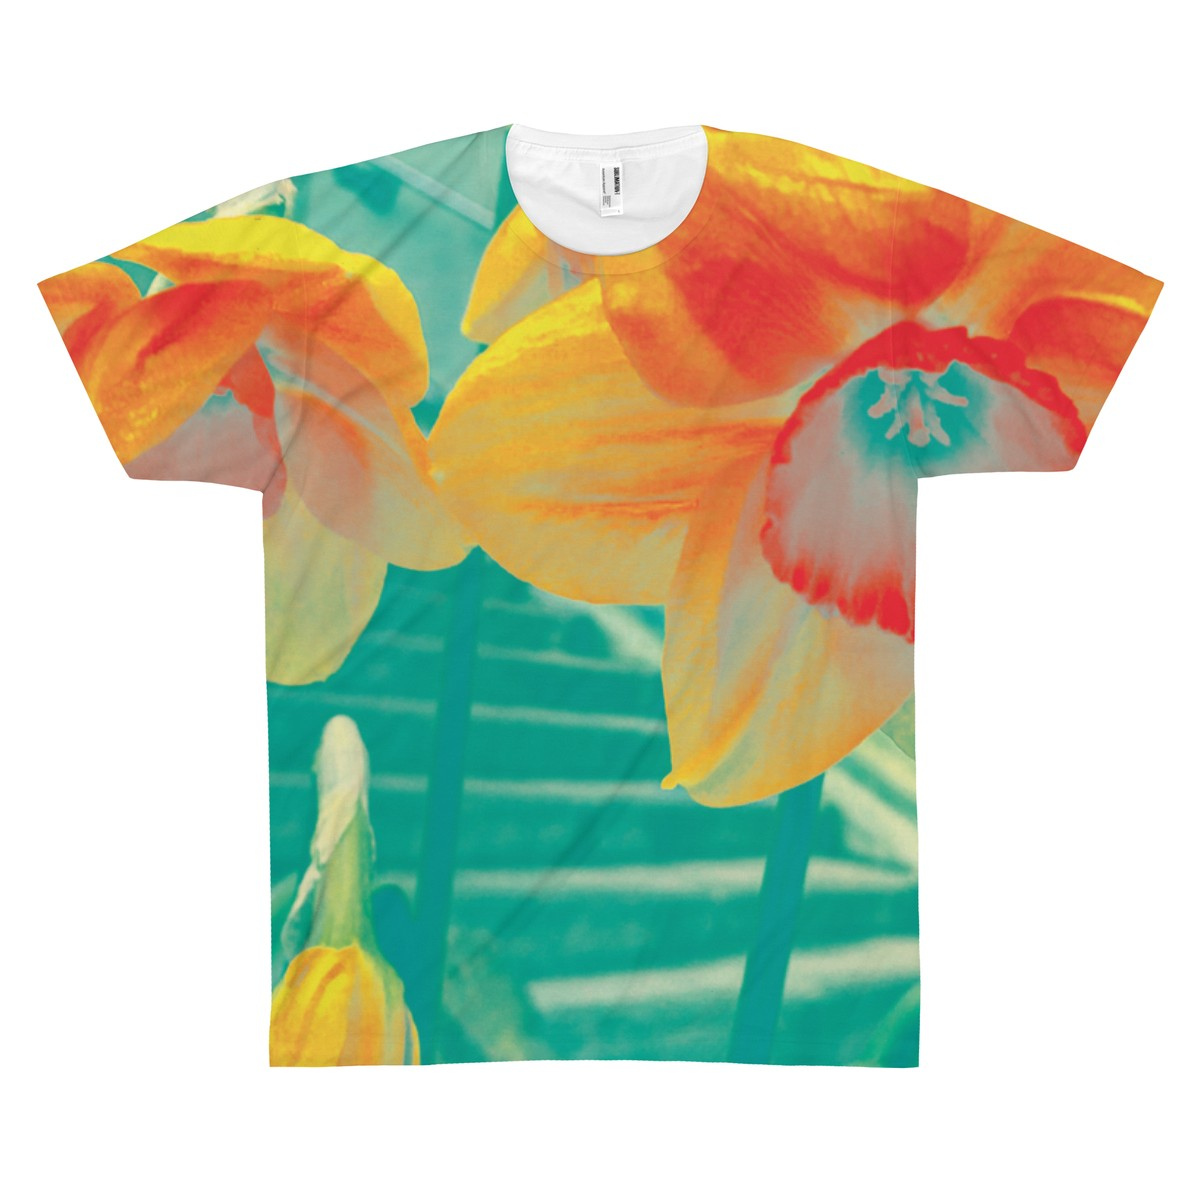 Unisex AOP Sublimation Tee